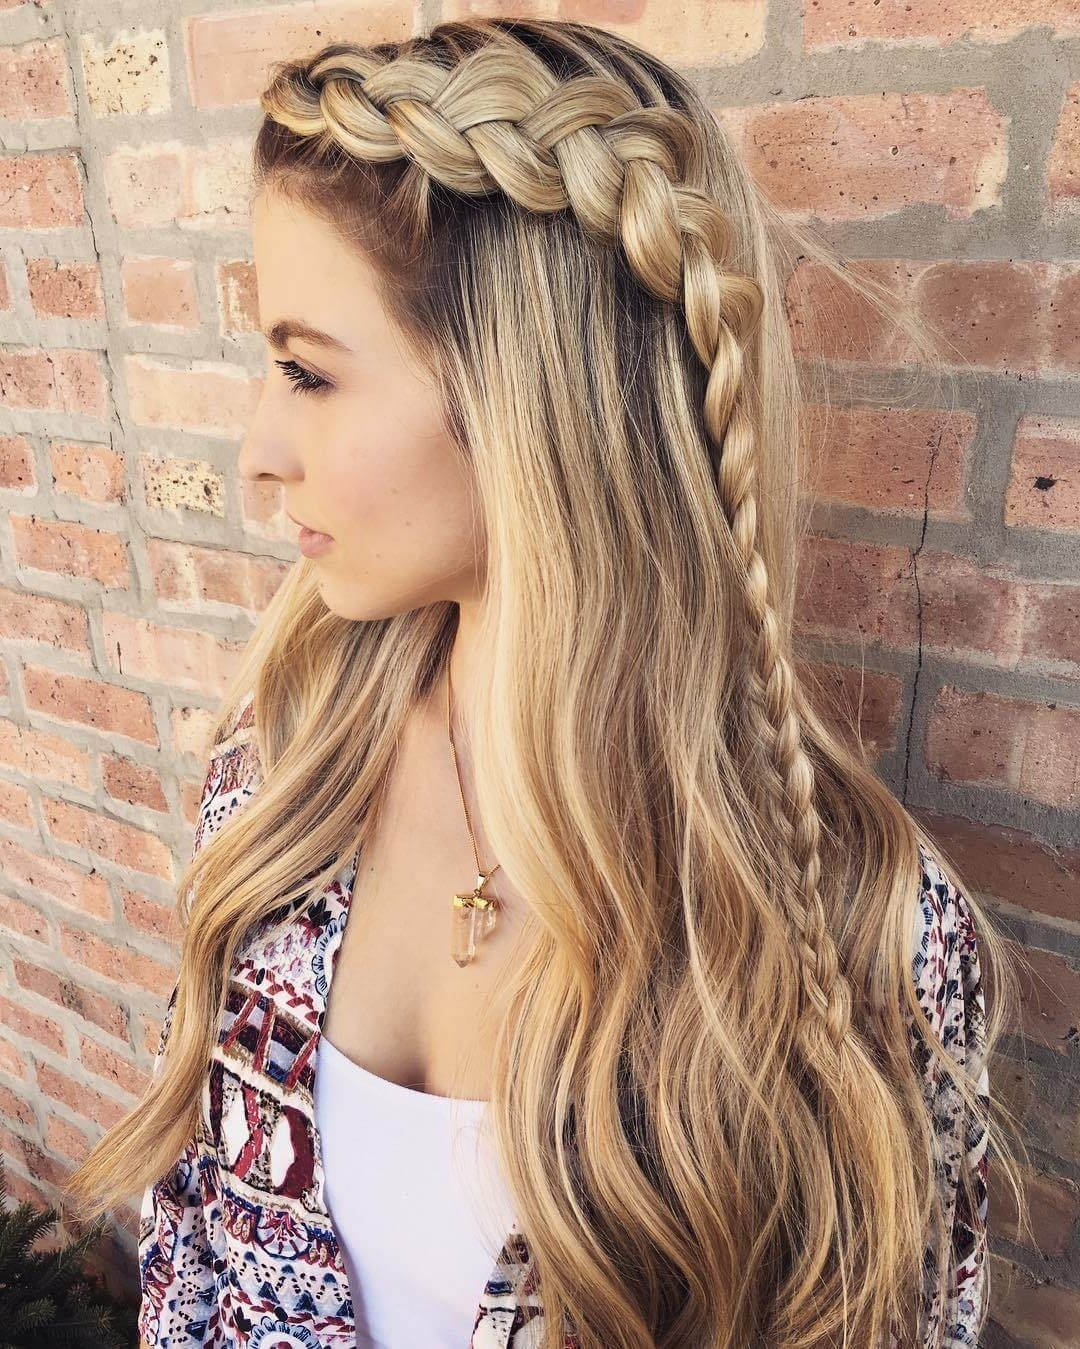 25 Effortless Side Braid Hairstyles To Make You Feel Special With Regard To Recent Braided Crown With Loose Curls (View 1 of 15)